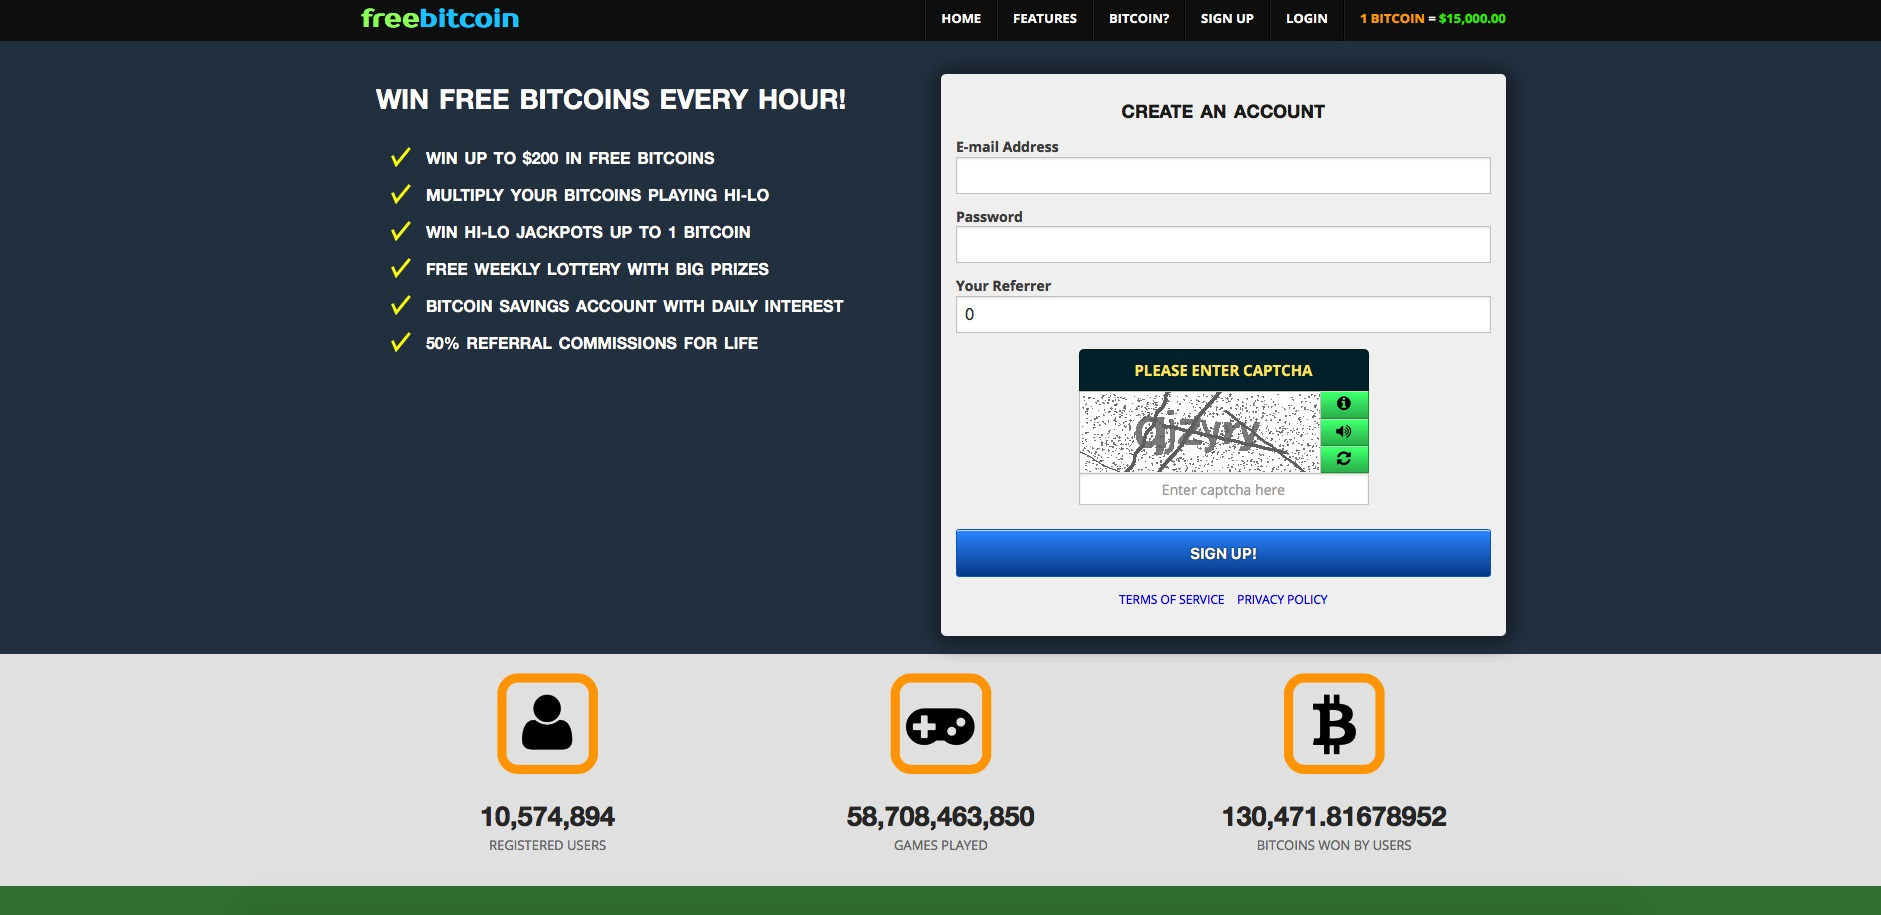 FreeBitco.in Review – Legit Bitcoin Faucet or Scam? – Scam Bitcoin